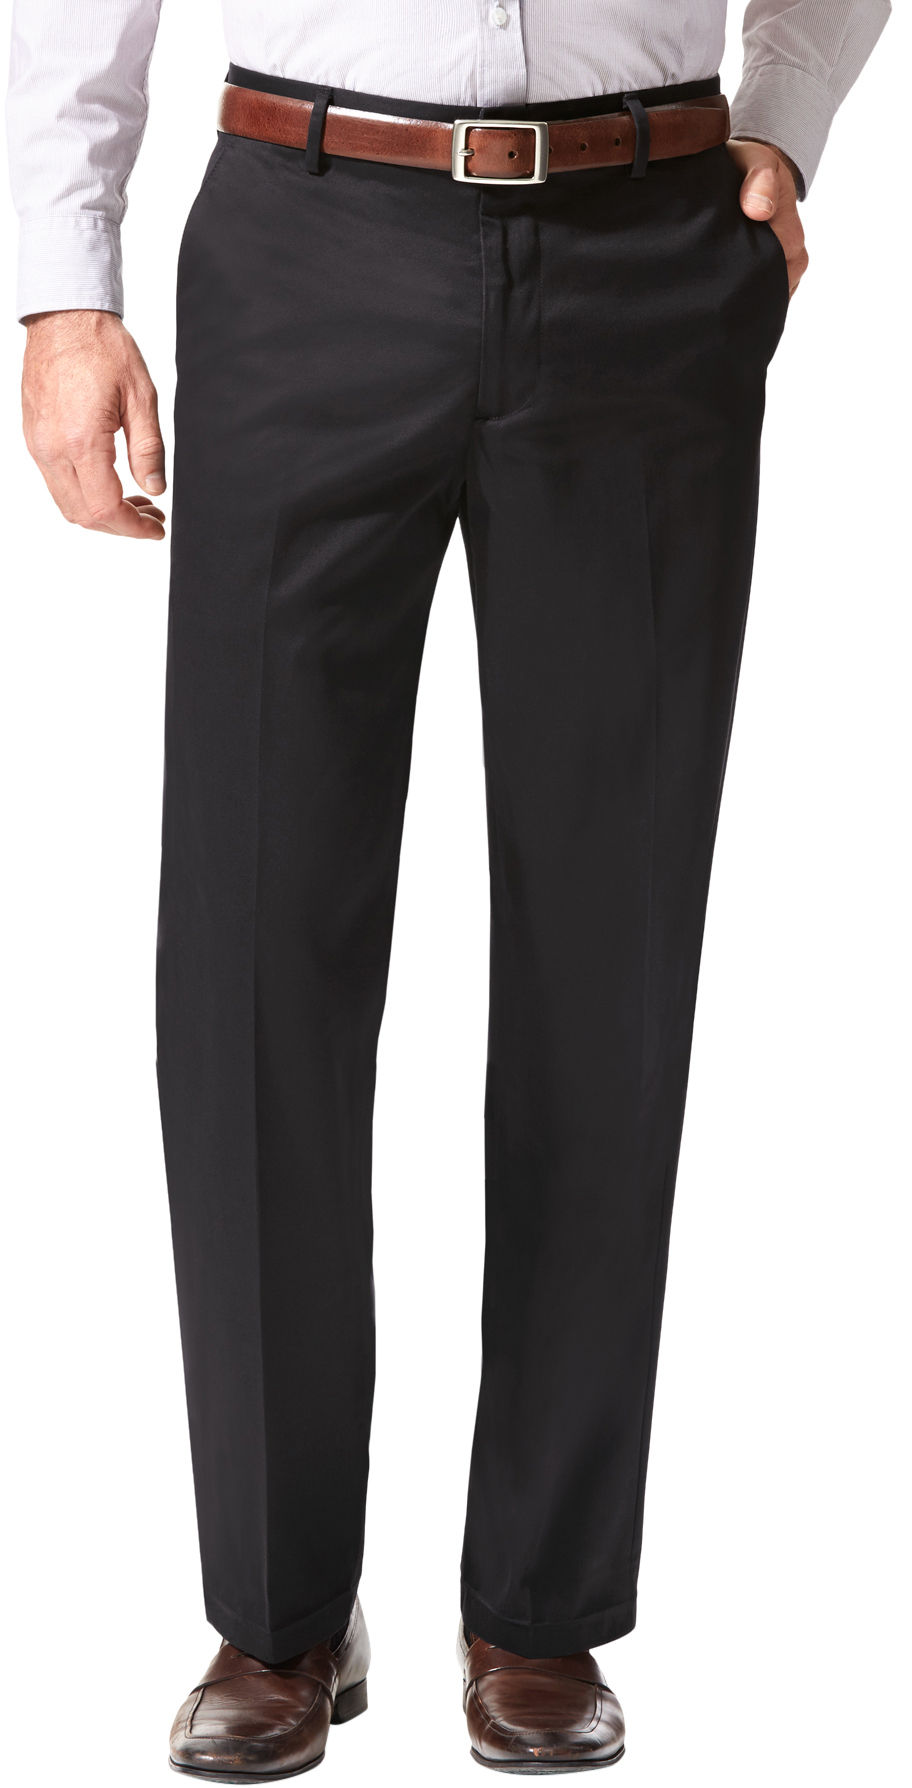 Dockers Mens Signature Straight Flat Front Pants Ebay